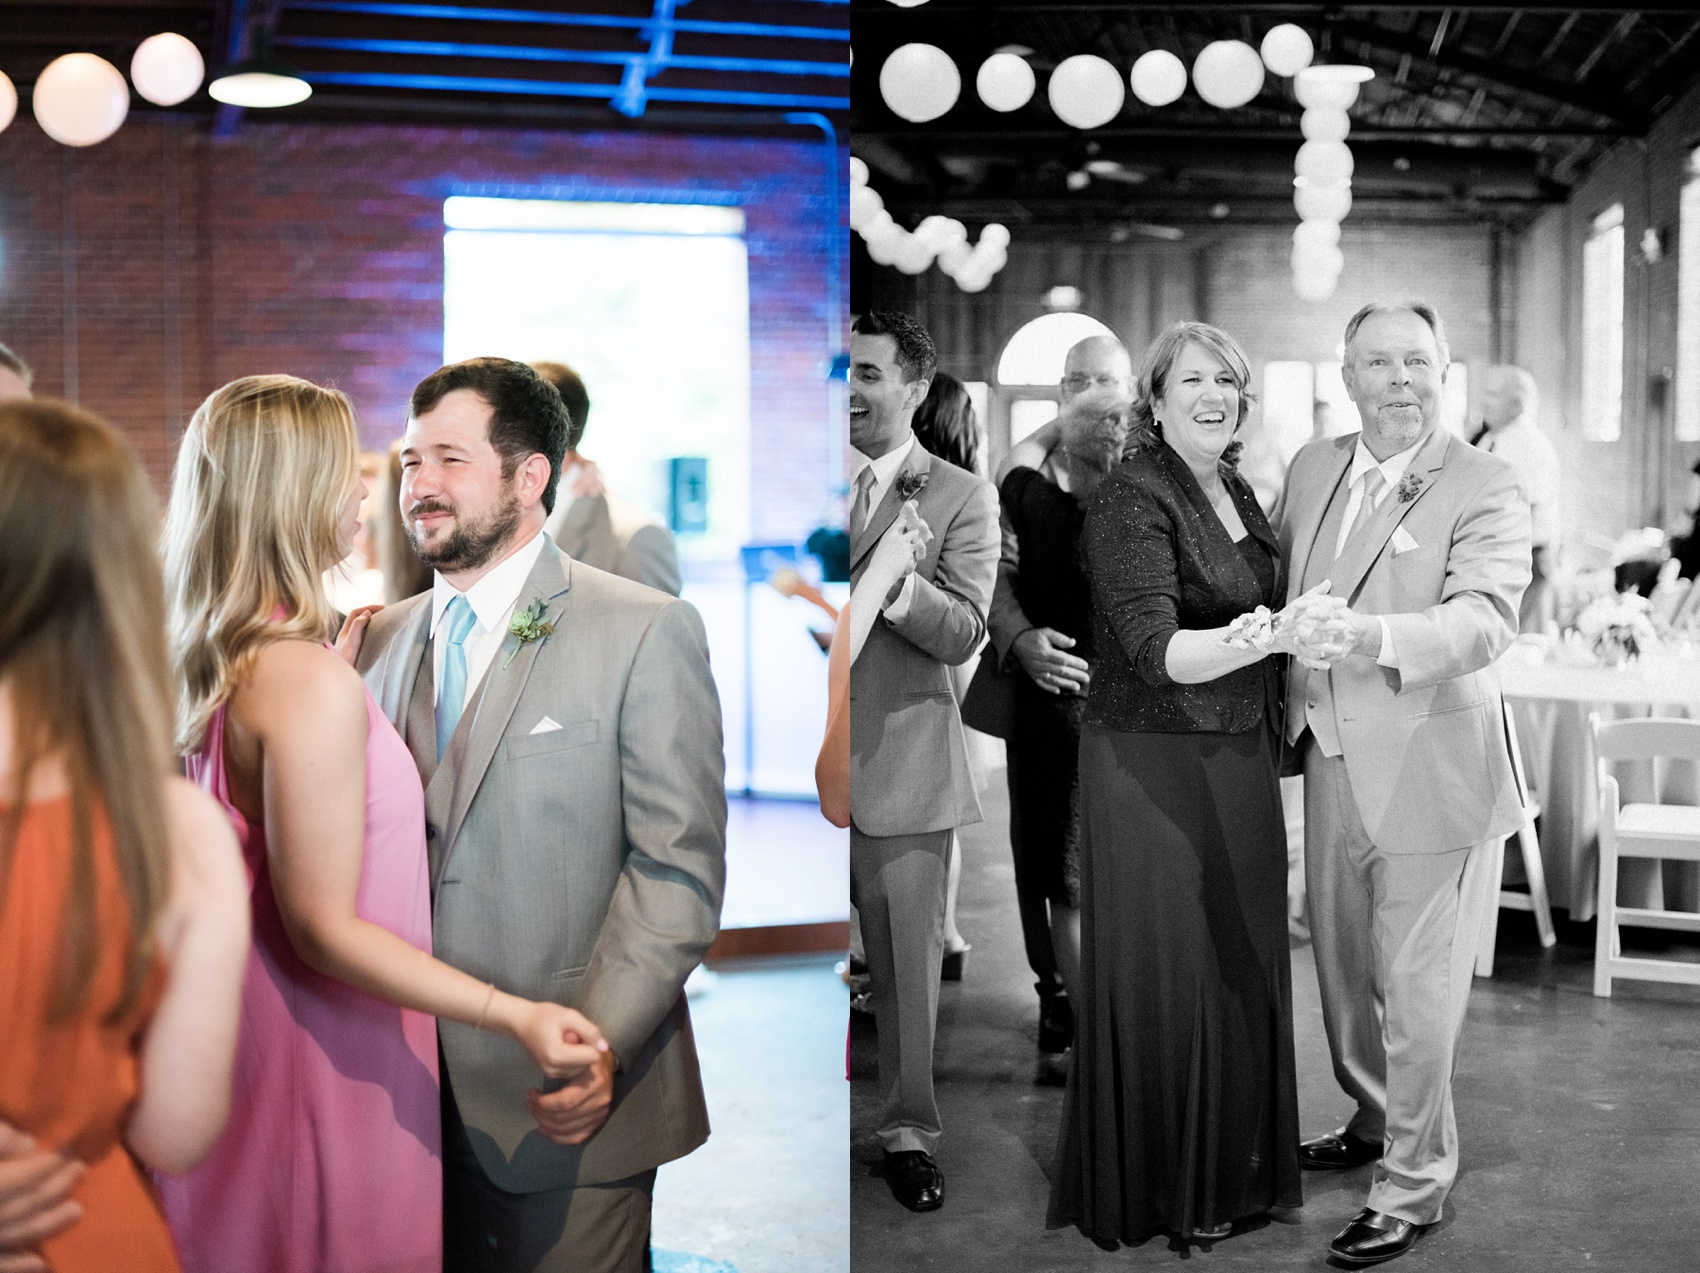 columbia_wedding_photographer_0329.jpg